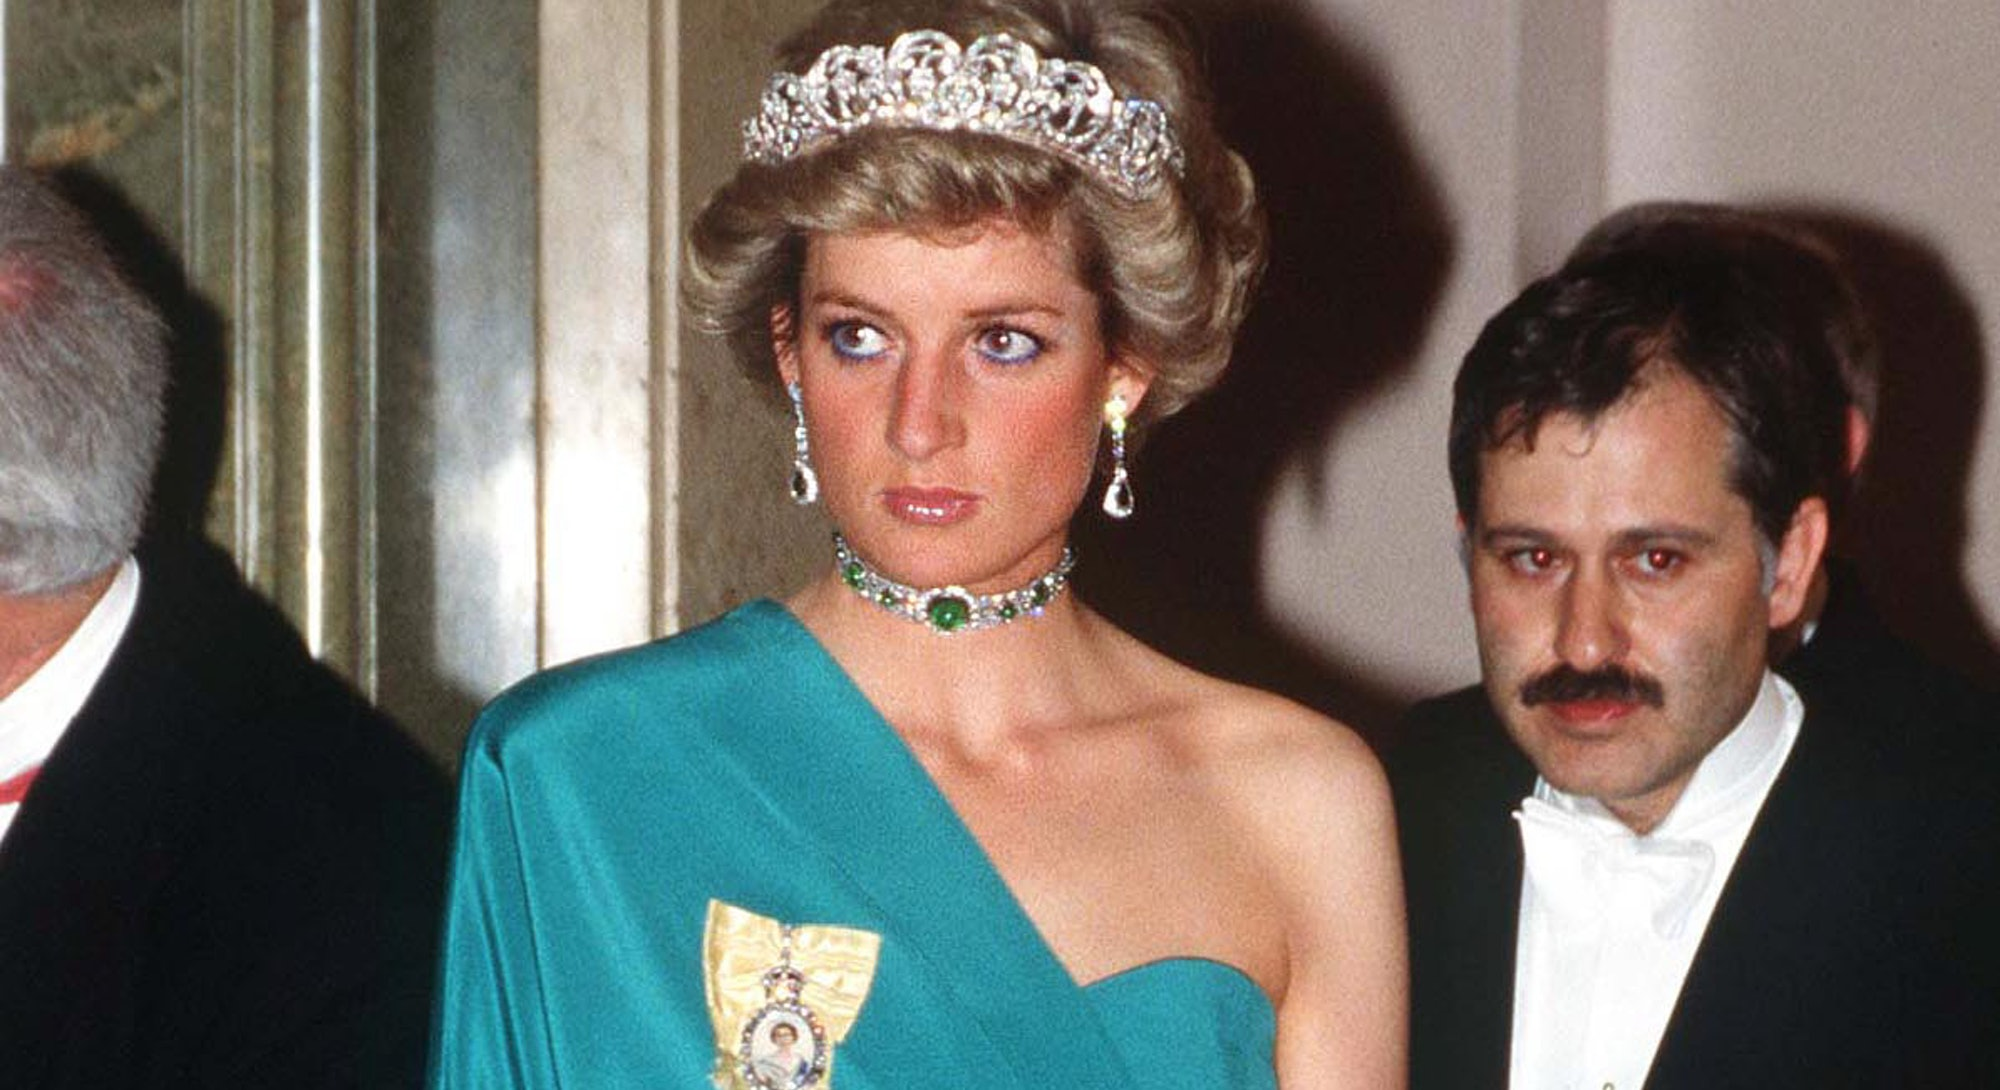 Here are 7 Princess Diana outfits that 'Diana: The Musical' recreated to perfection.